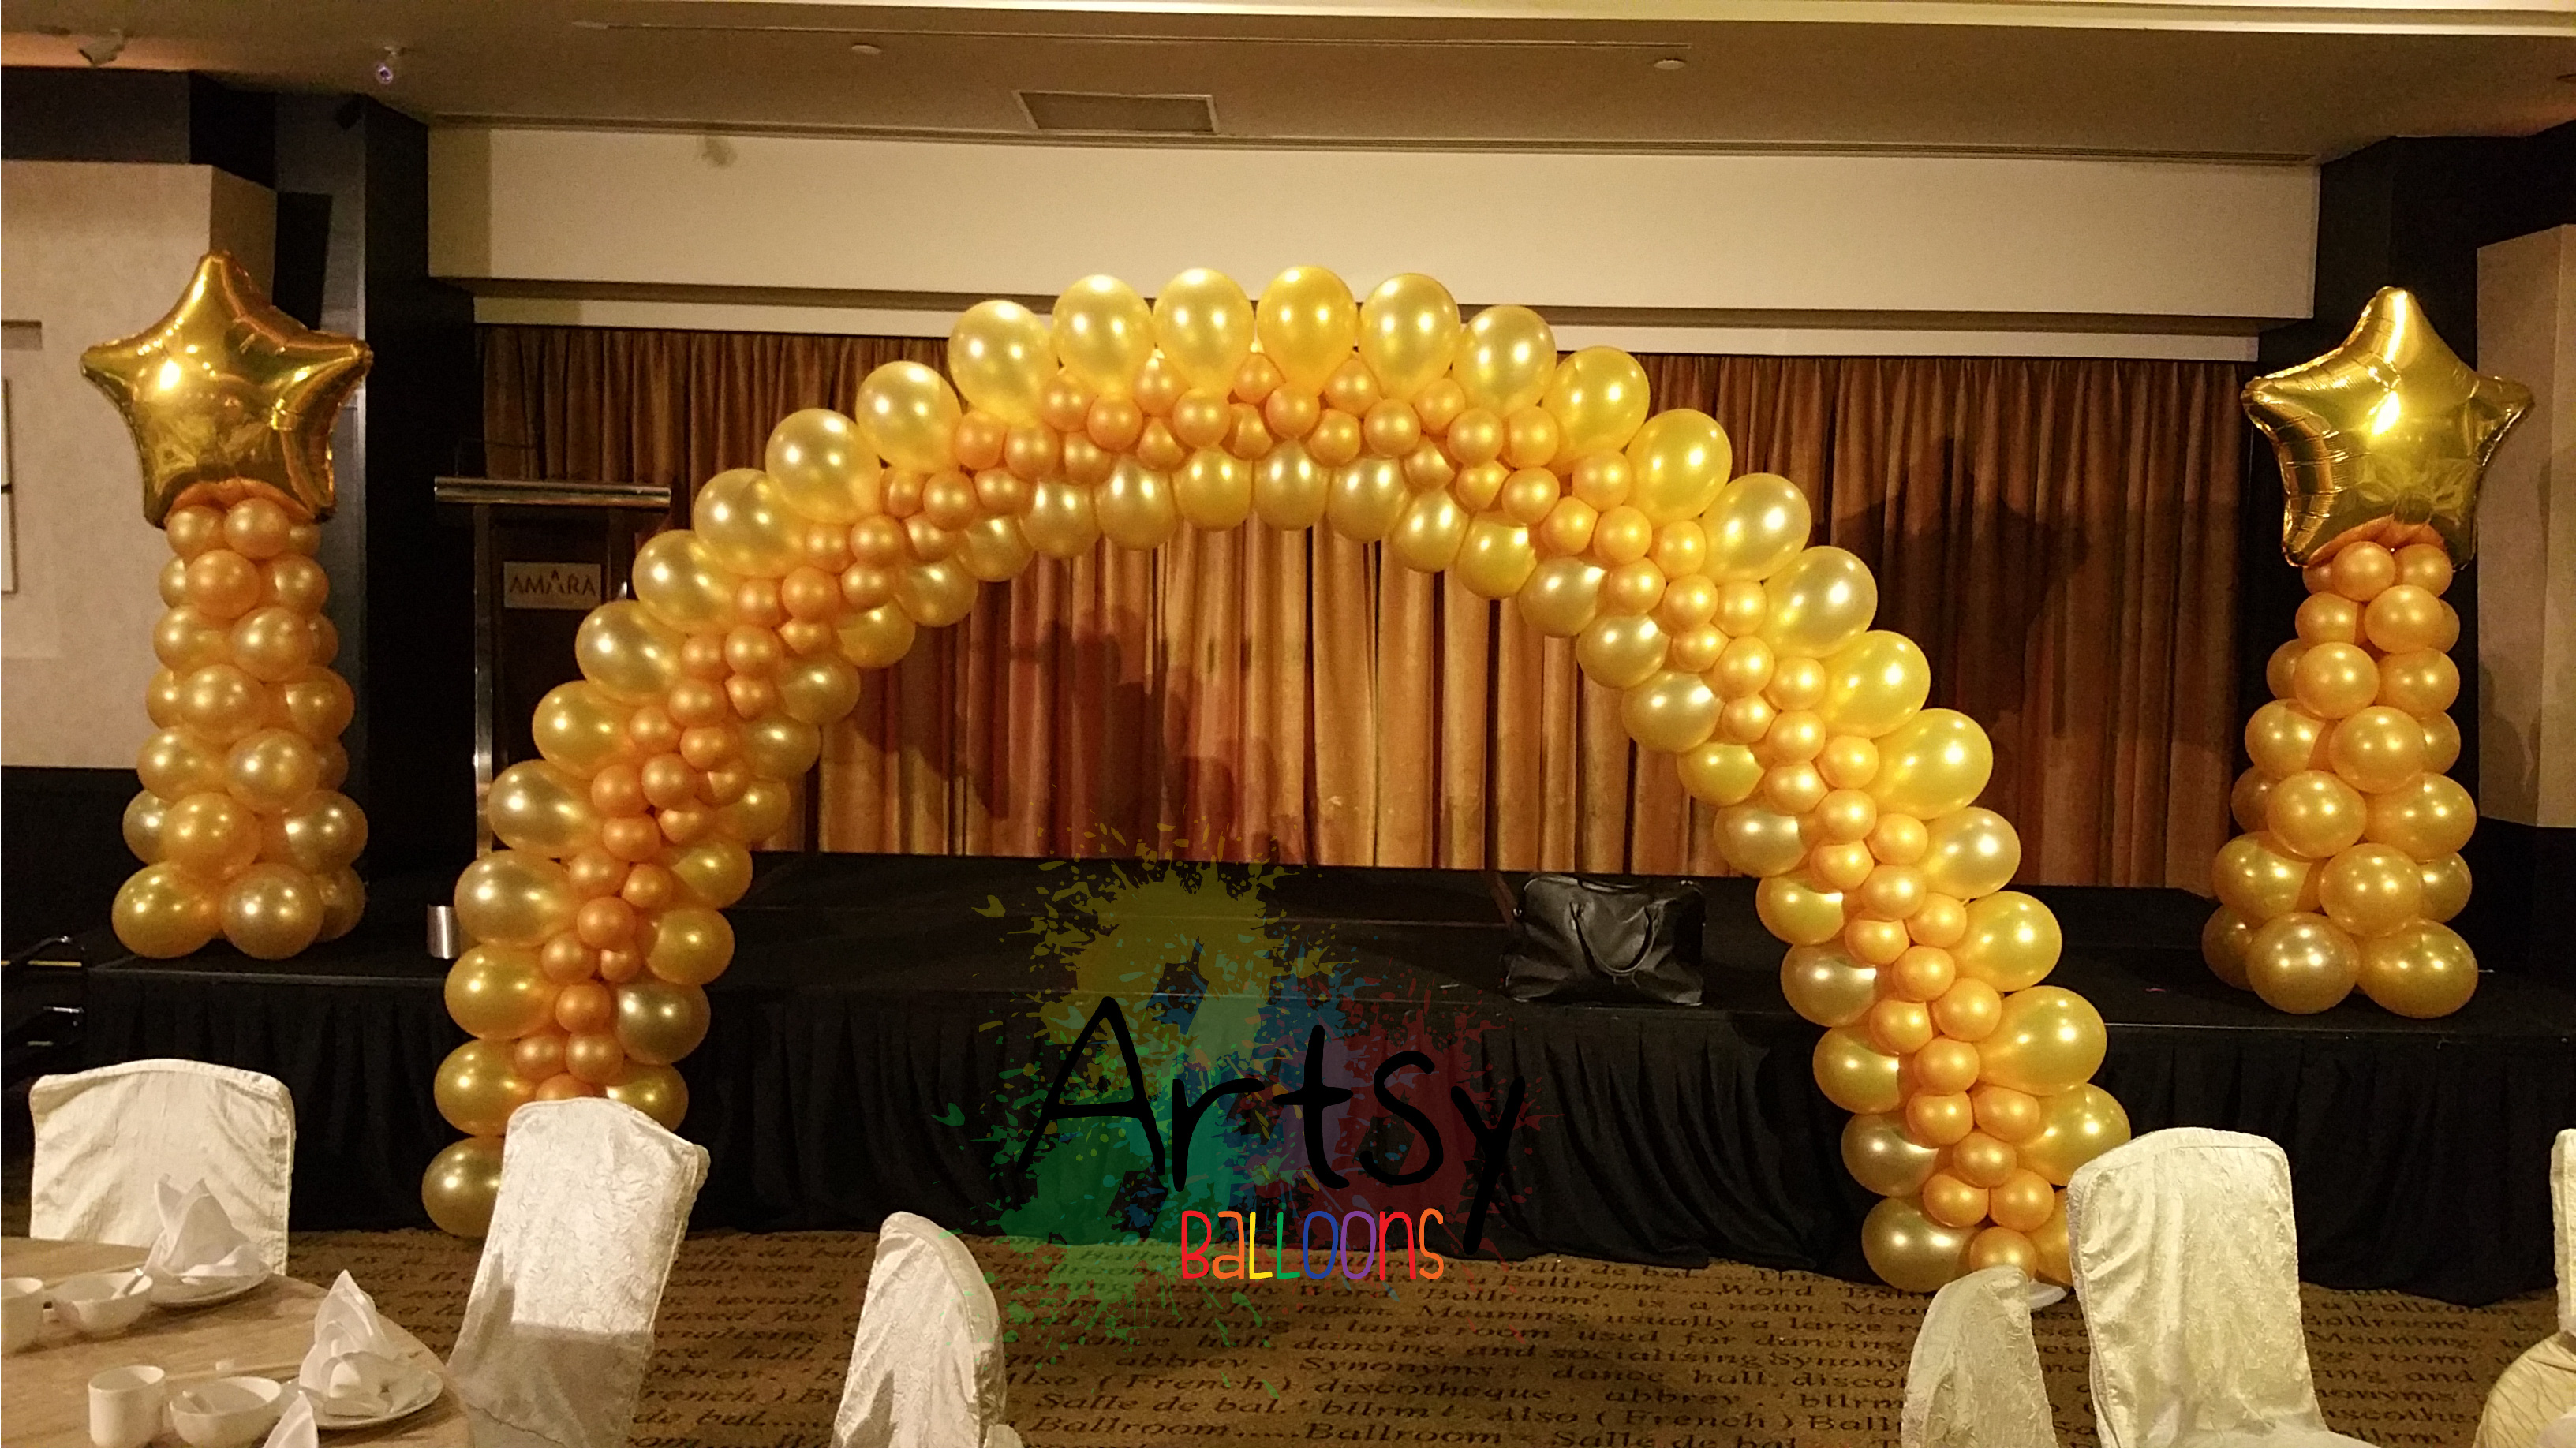 Balloon arch artsyballoons advance balloon decoration for Arch balloon decoration